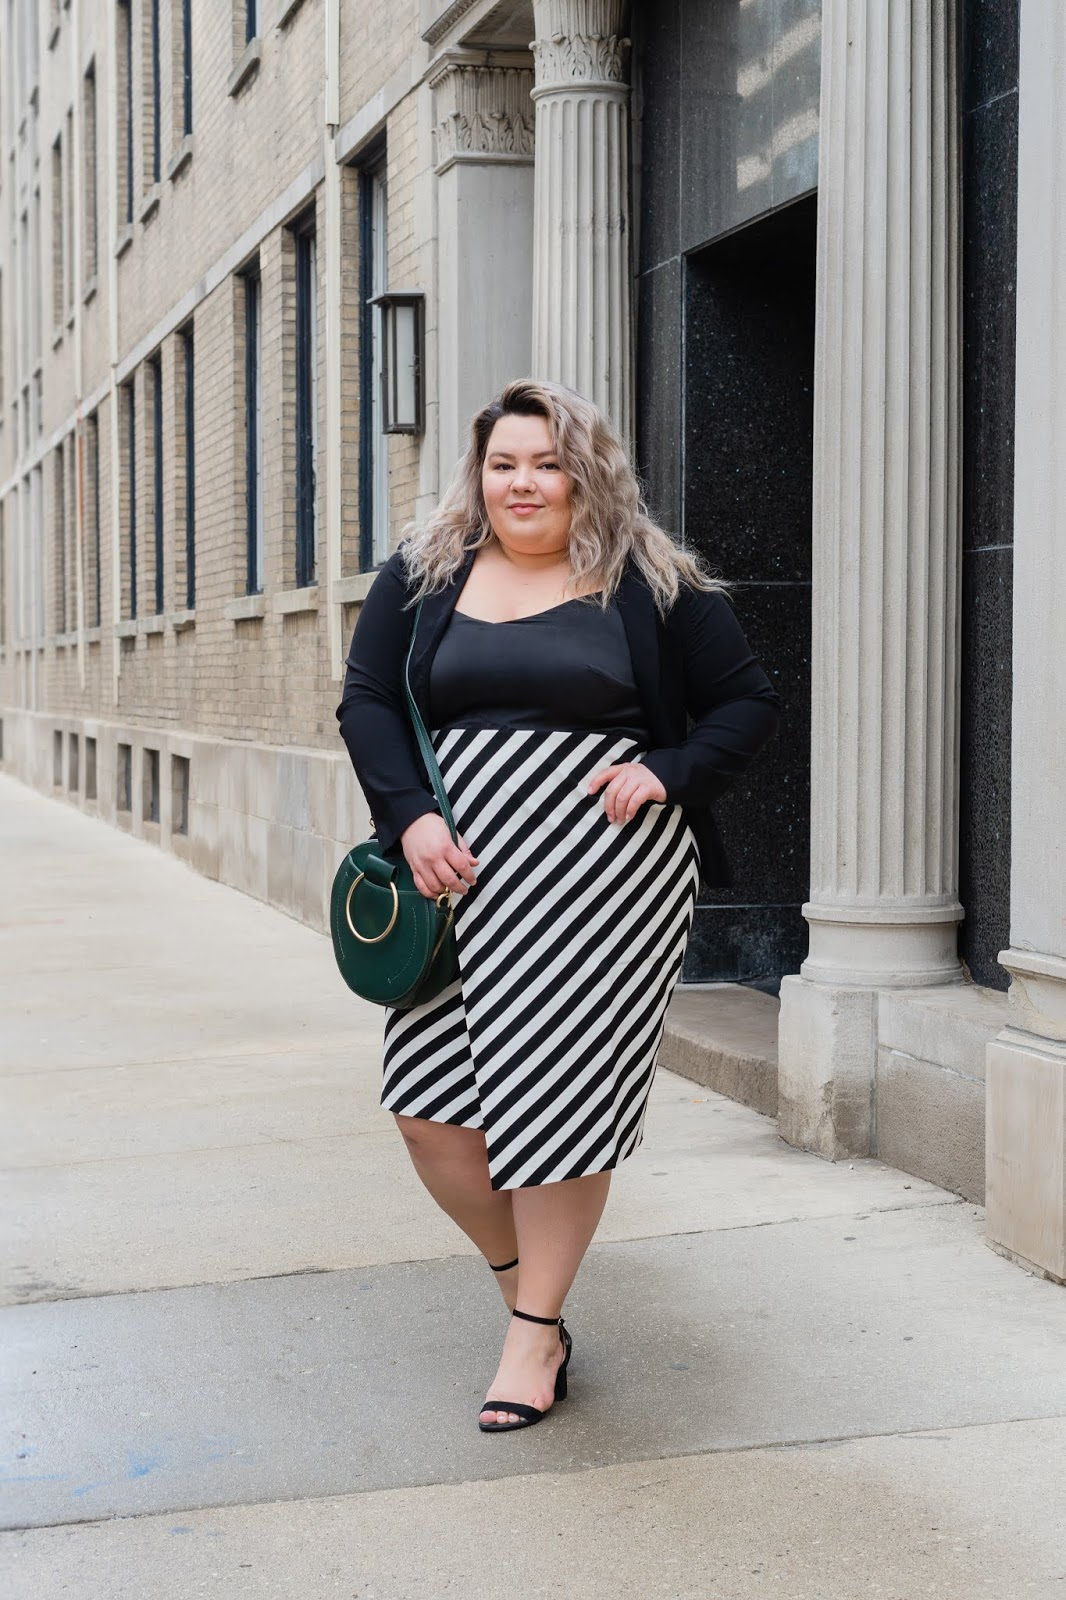 Chicago Plus Size Petite Fashion Blogger, YouTuber, and model Natalie Craig, of Natalie in the City, reviews Maree Pour Tai's plus size workwear.